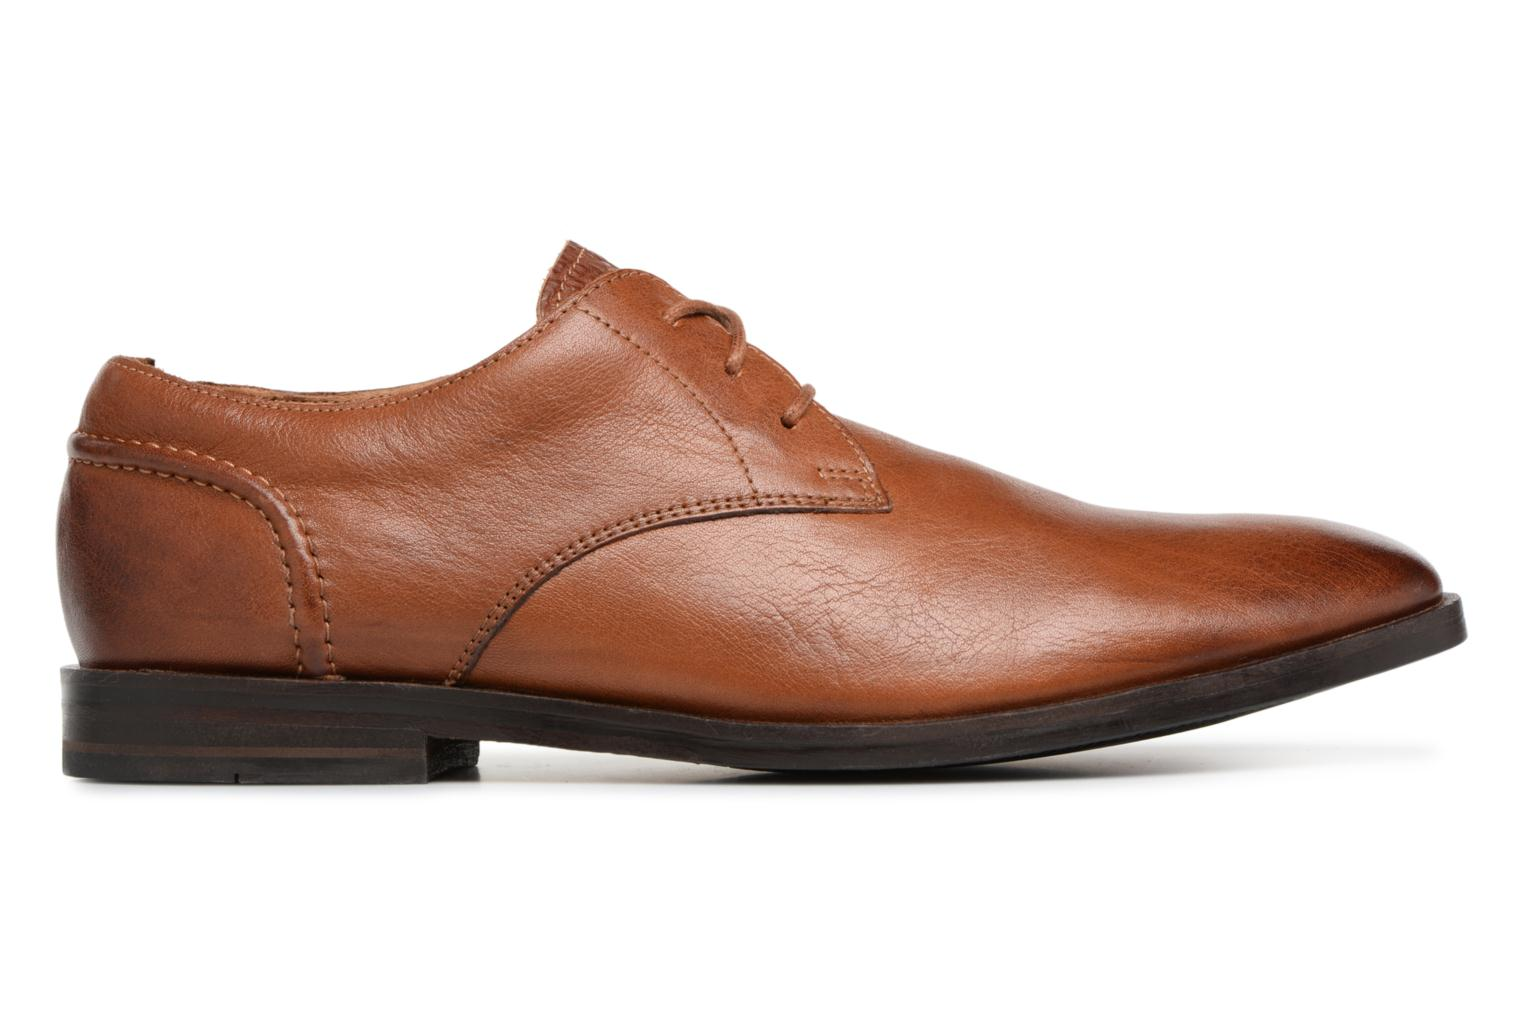 Lace Glide Leather Glide Lace Clarks Clarks Tan iPZkwOXuT